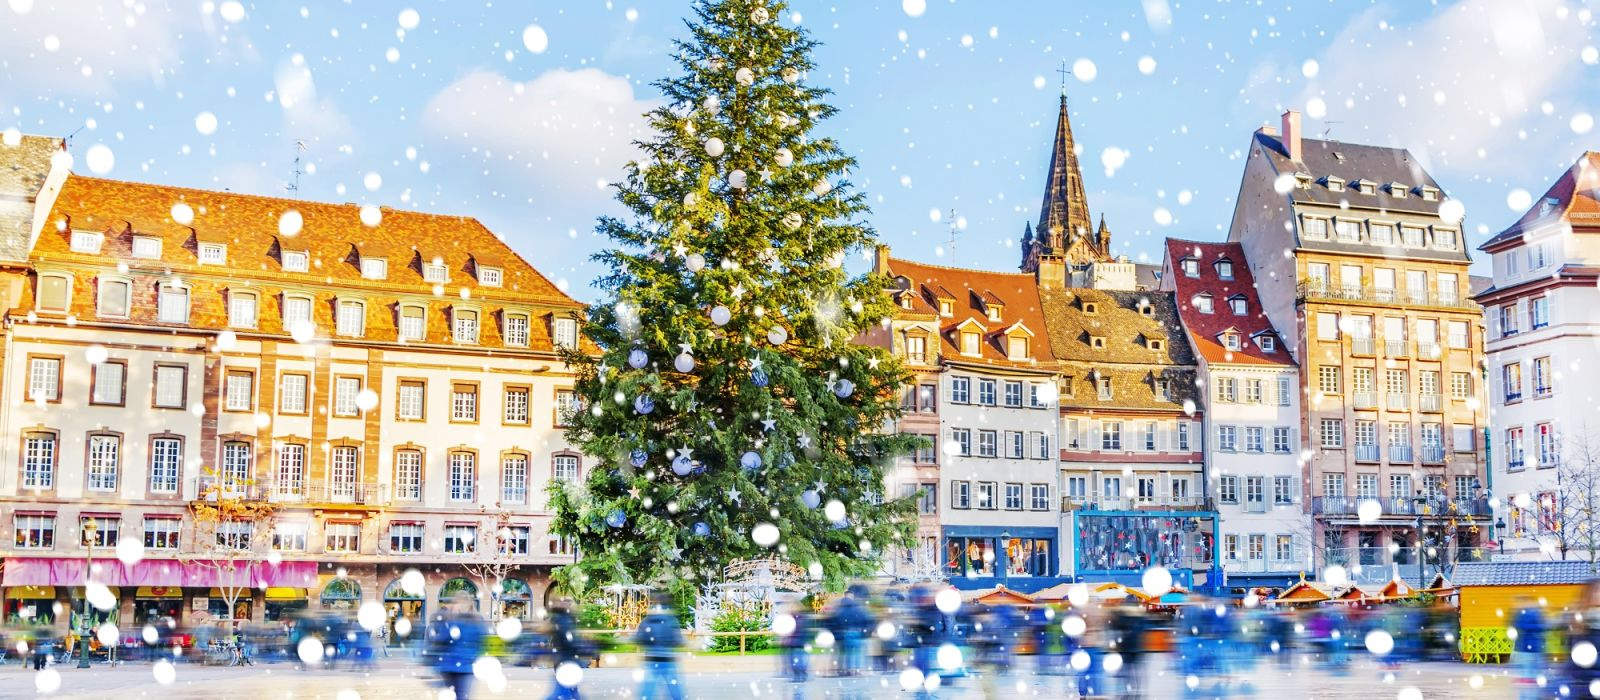 Christmas tree and xmas market at Kleber Square in medieval city of Strasbourg